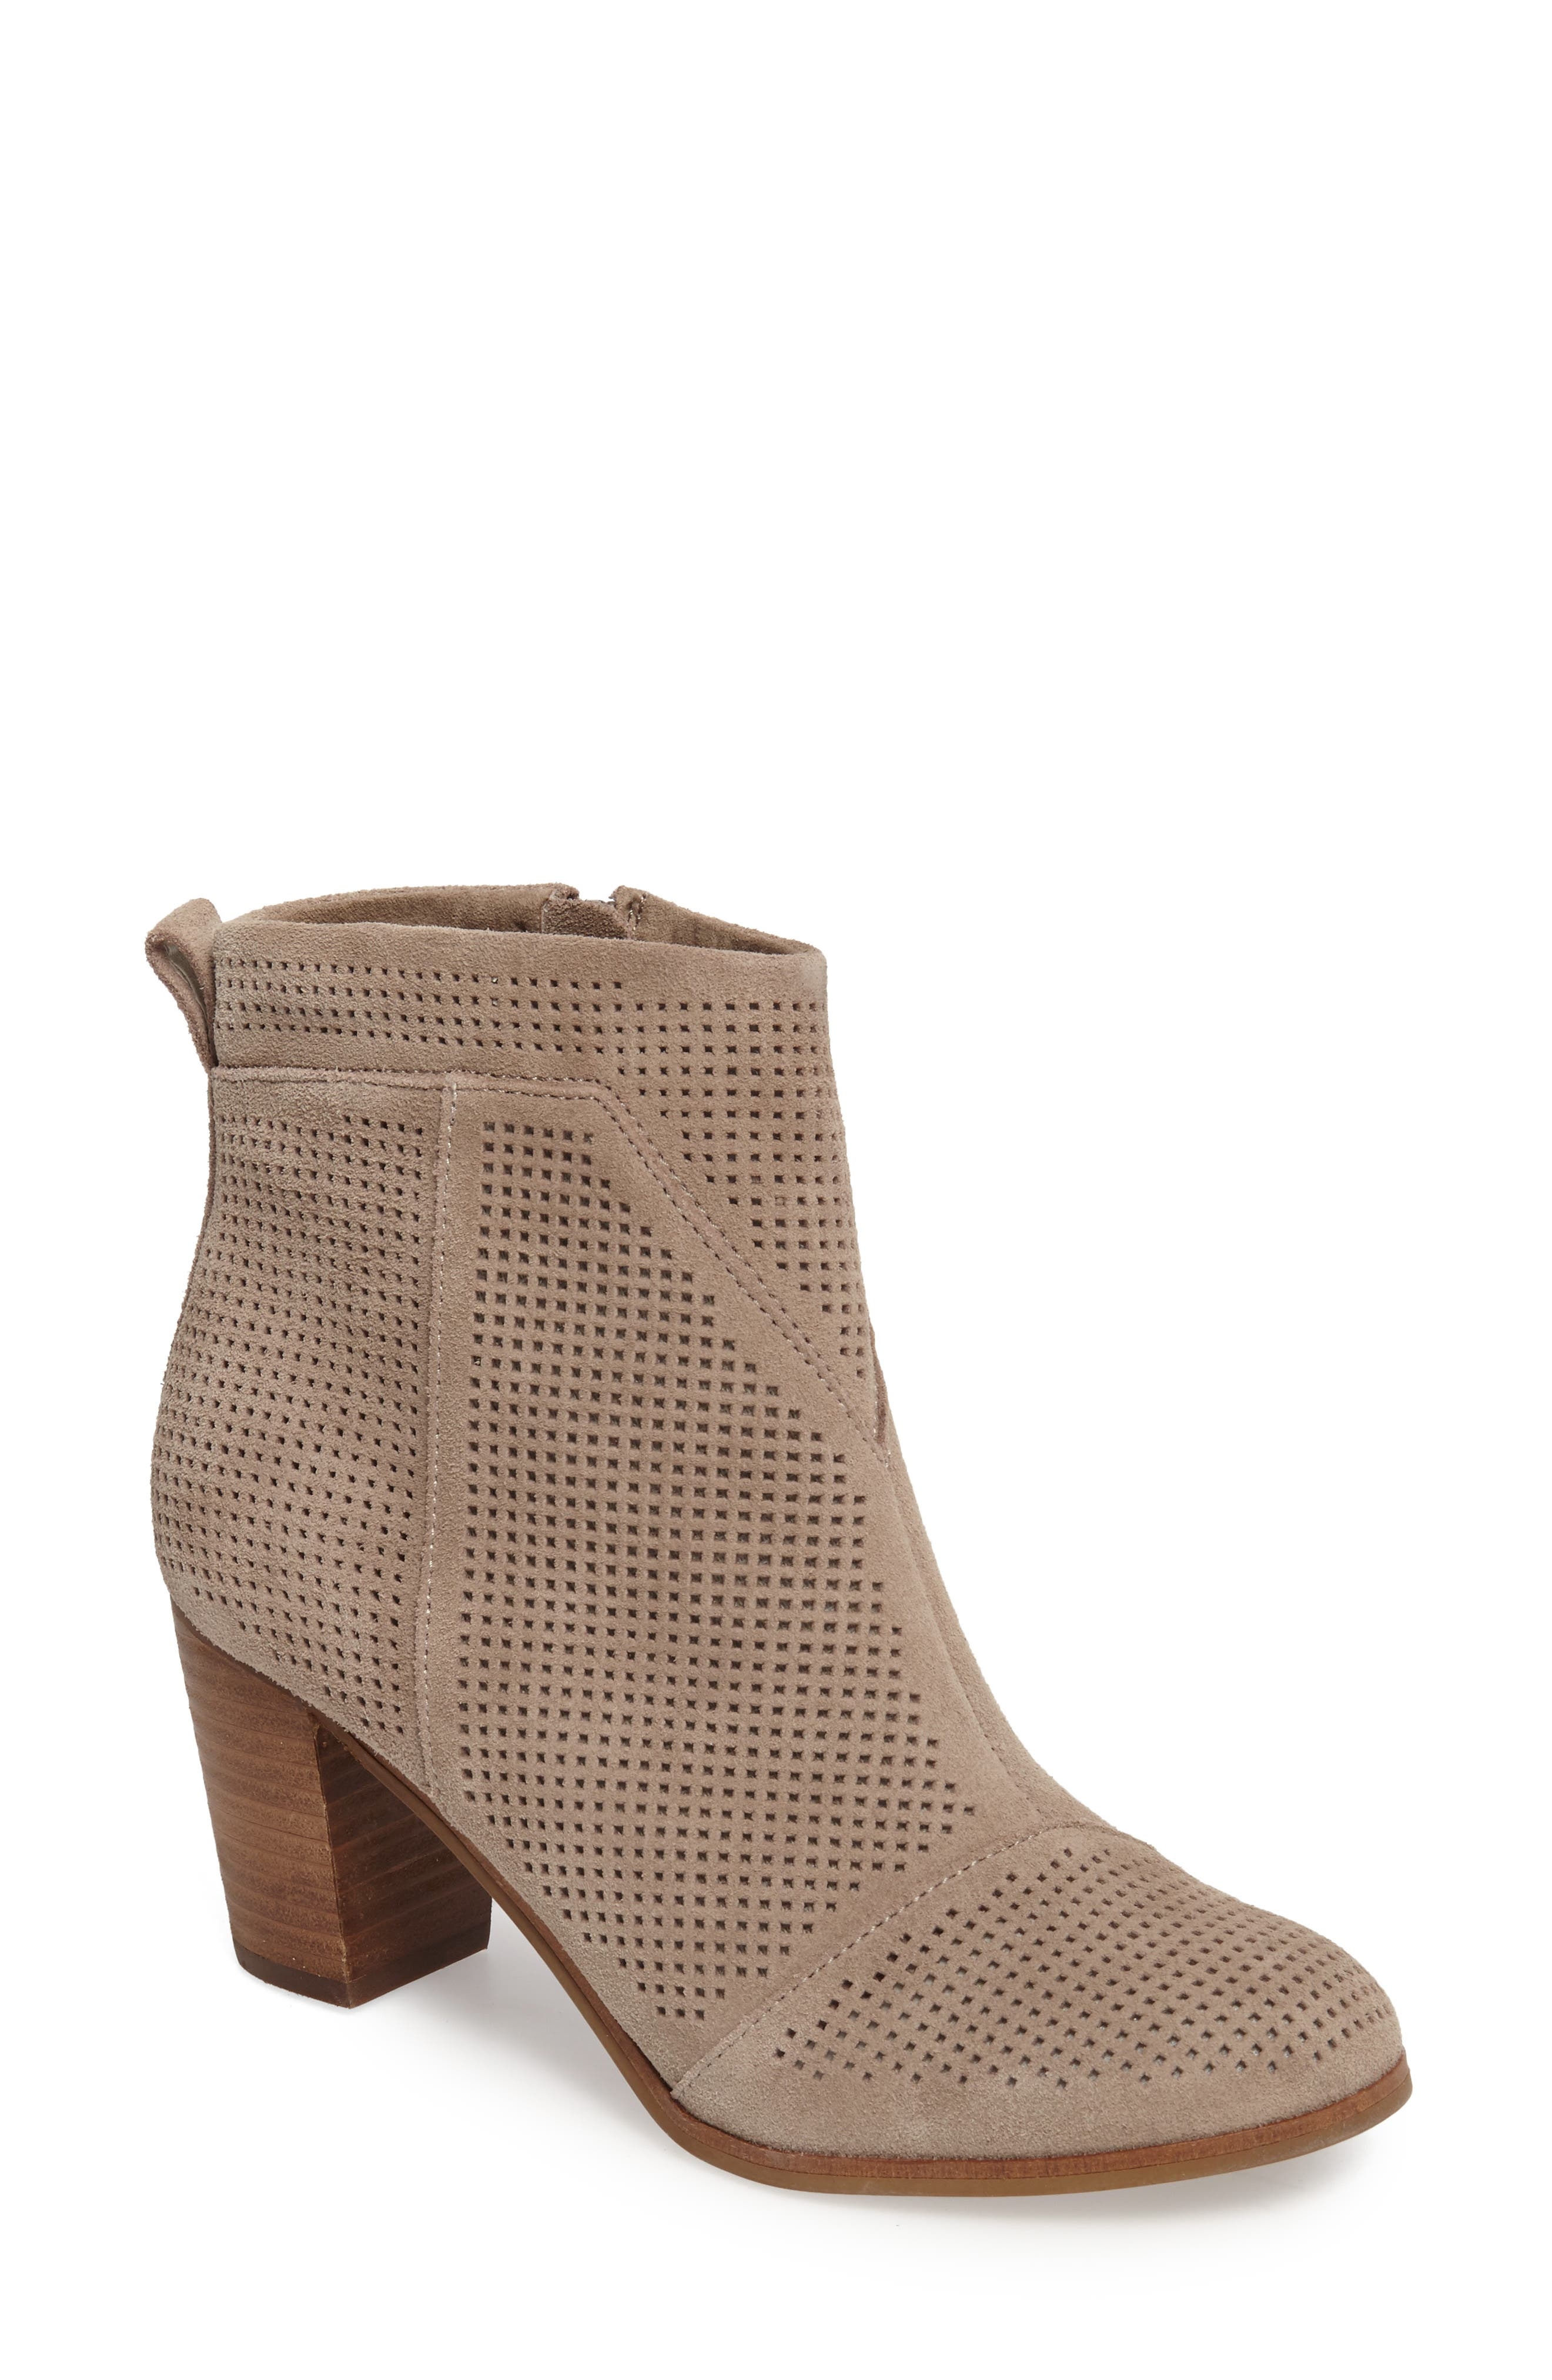 Alternate Image 1 Selected - TOMS 'Lunata' Bootie (Women)